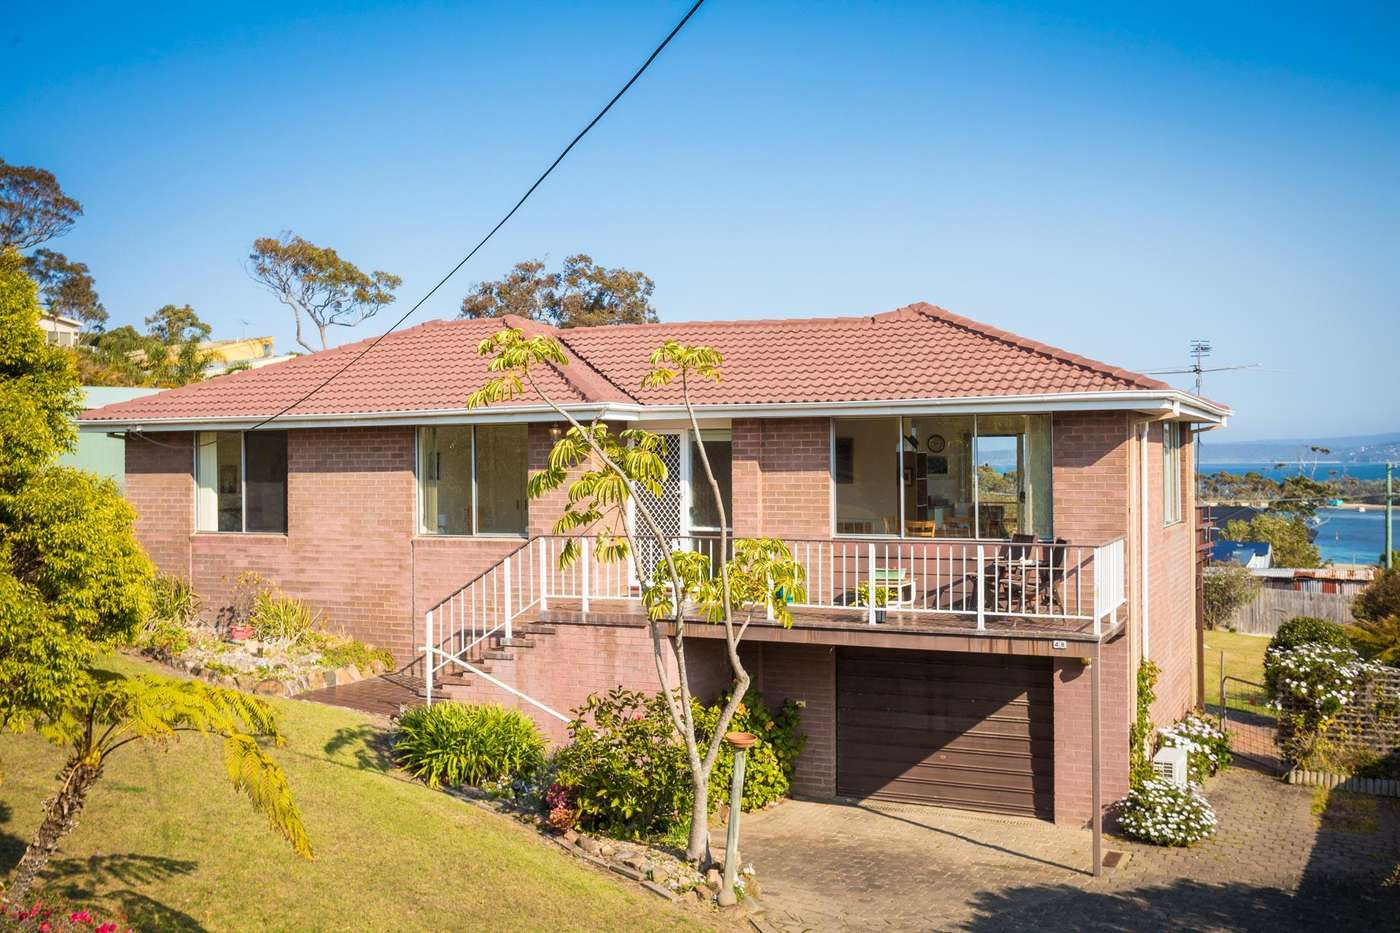 Main view of Homely house listing, 48 Lakeview Avenue, Merimbula, NSW 2548